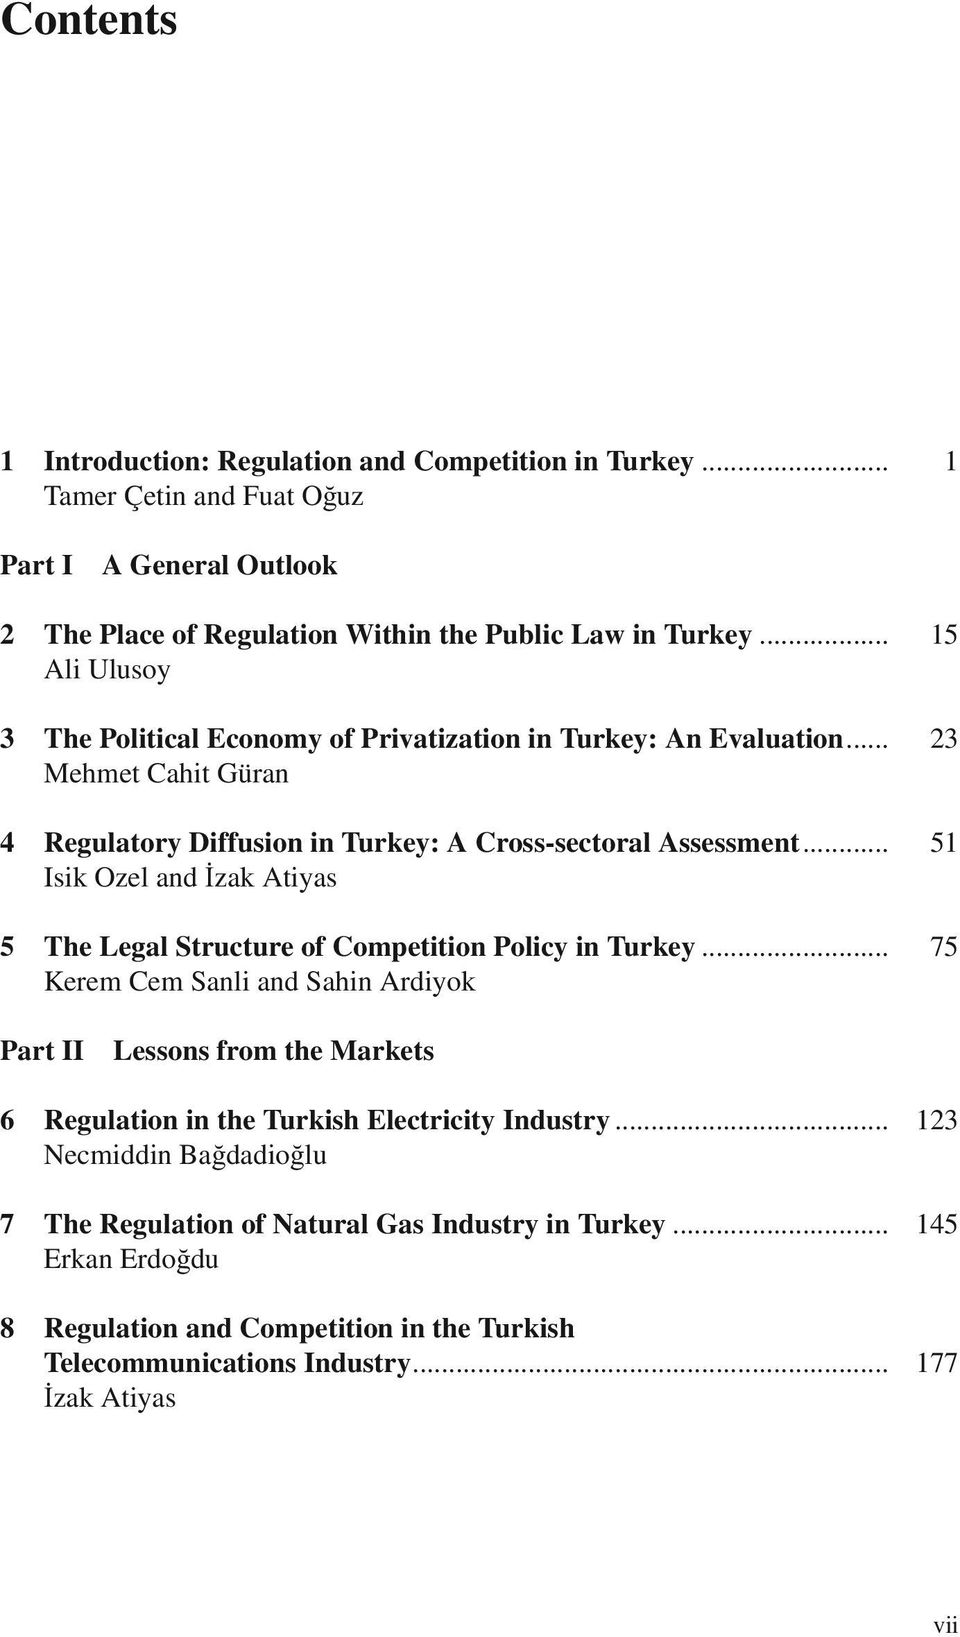 .. Isik Ozel and İzak Atiyas 51 5 The Legal Structure of Competition Policy in Turkey.